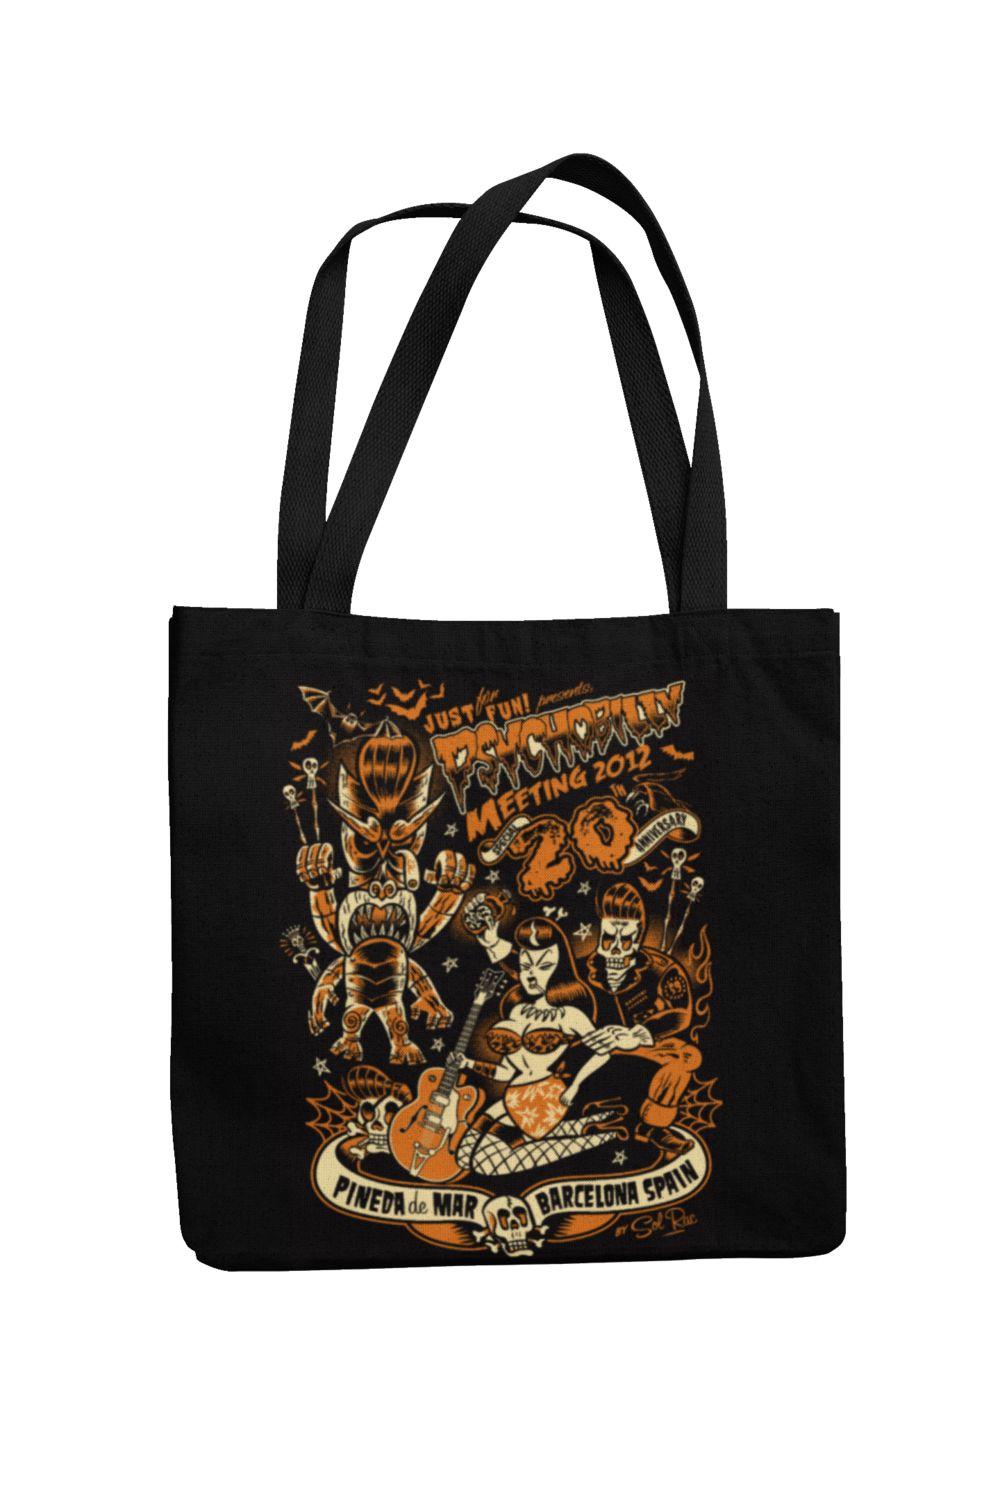 Cotton Bag Psychobilly meeting design by Solrac 2012